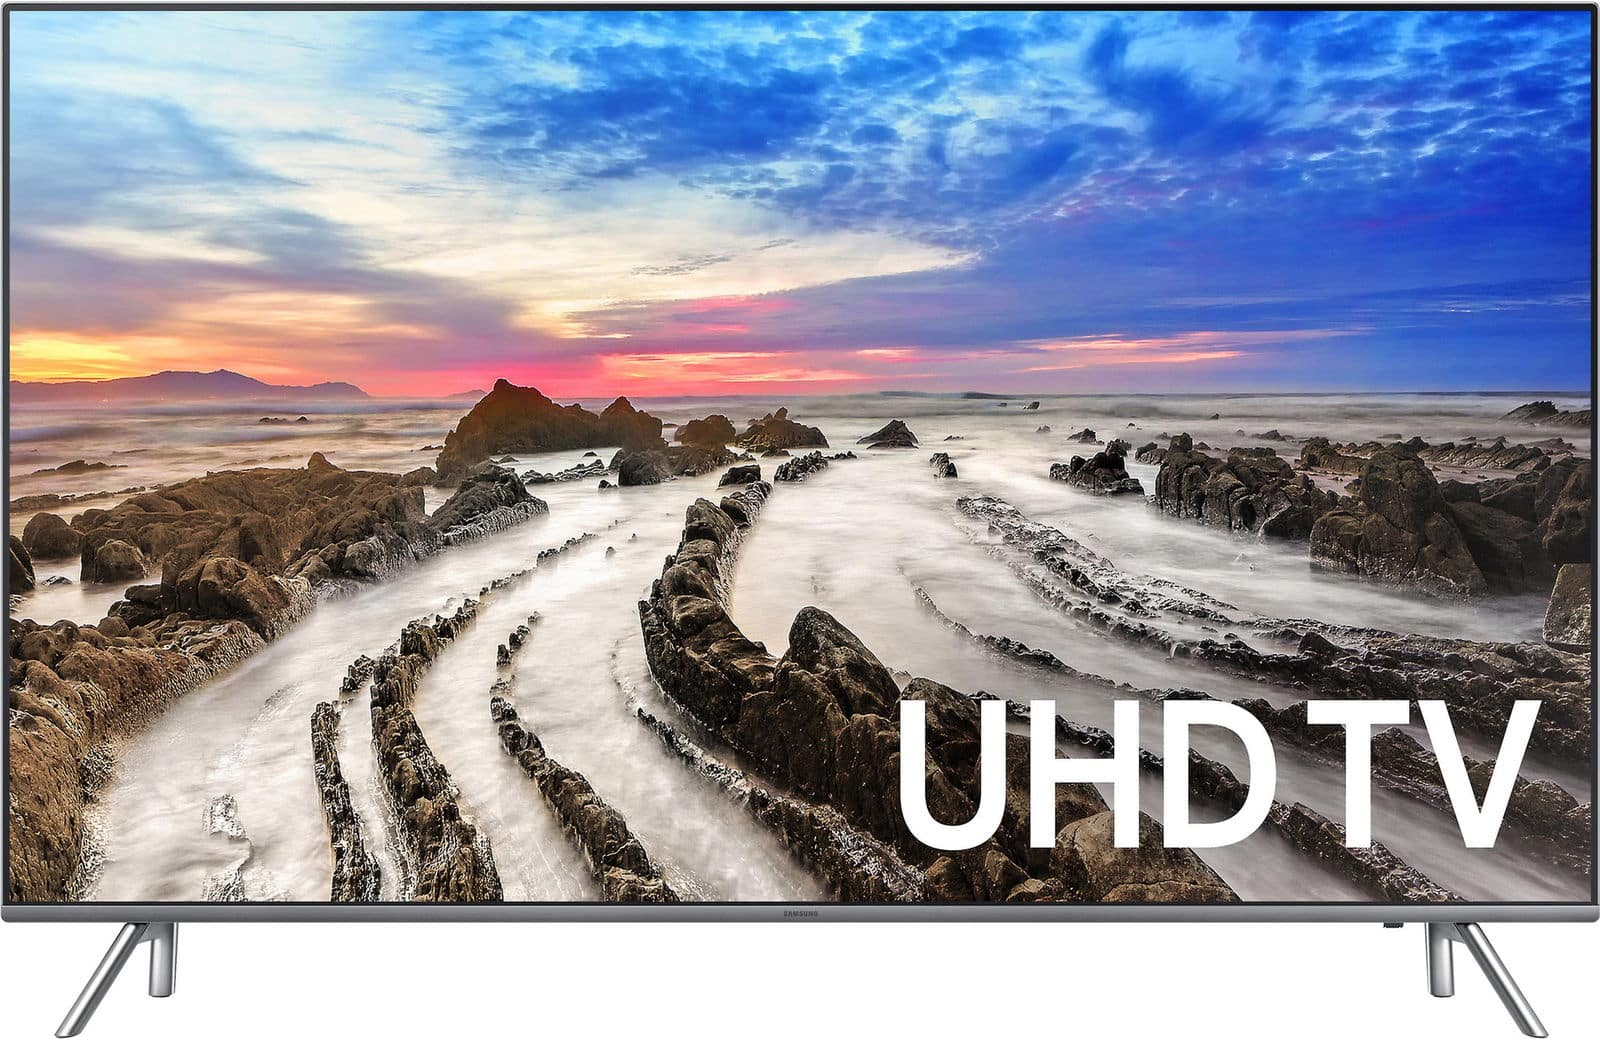 Samsung 65 in. 2160p 4K HDR LED 120Hz Smart TV UN65MU8000 $1299 no tax